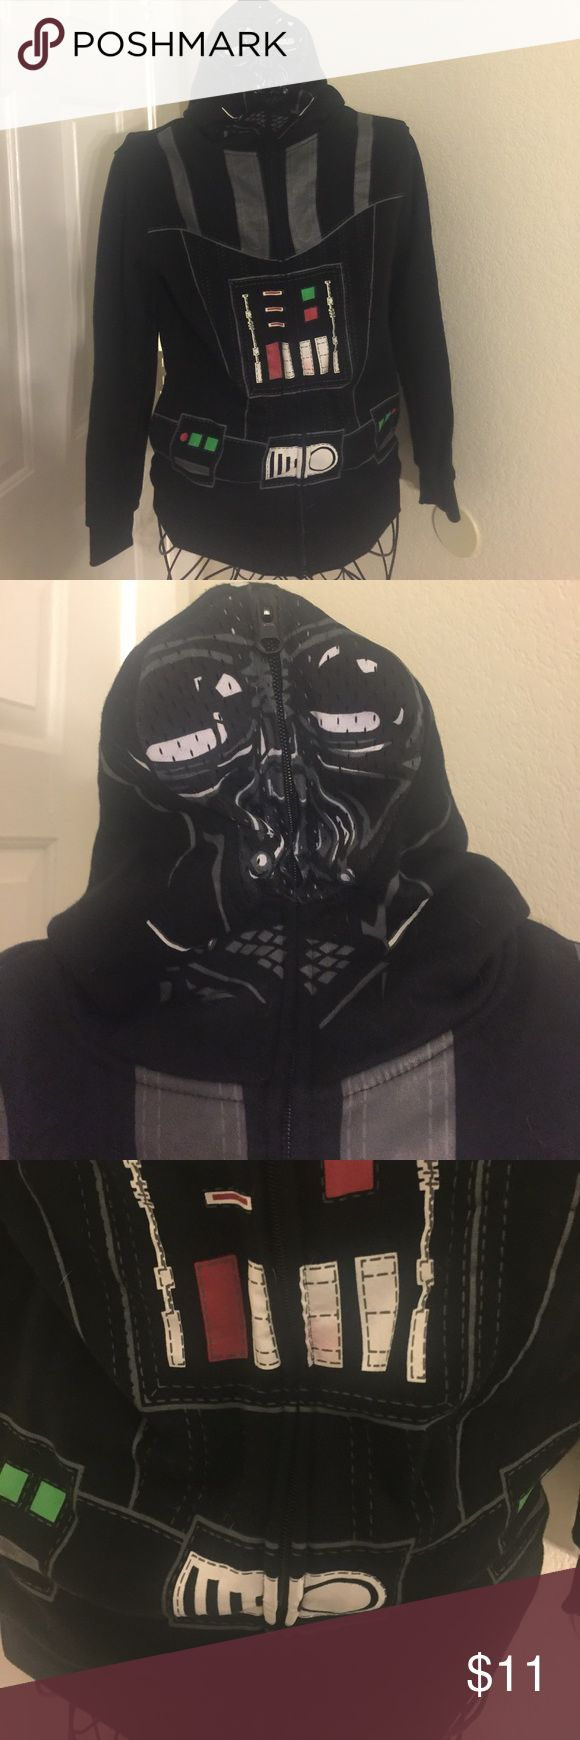 Star Wars darth Vader hoodie costume Star Wars darth Vader hoodie costume.  Boys size large.  Some of the red bled on to the white control panel during the wash see pictures. Otherwise excellent condition. star wars  Shirts & Tops Sweatshirts & Hoodies